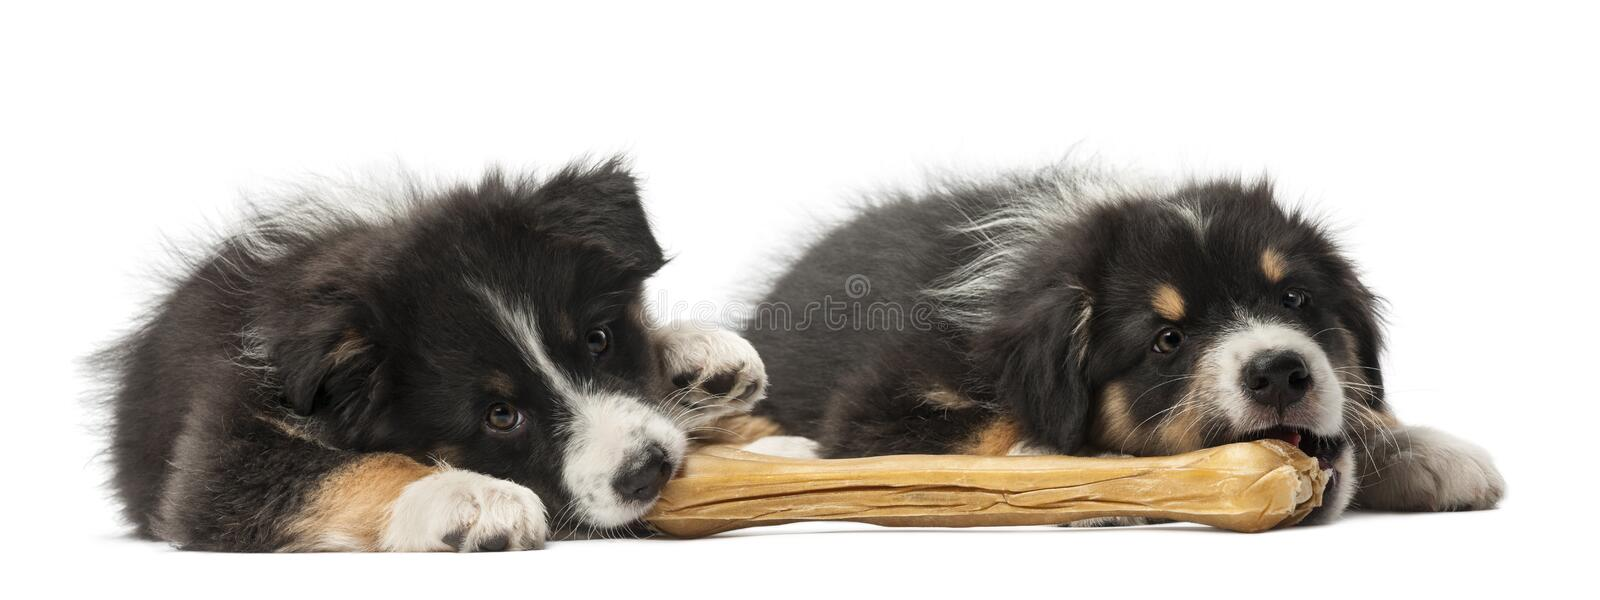 Two Australian Shepherd puppies, 2 months old. Lying and eating knuckle bone against white background stock images